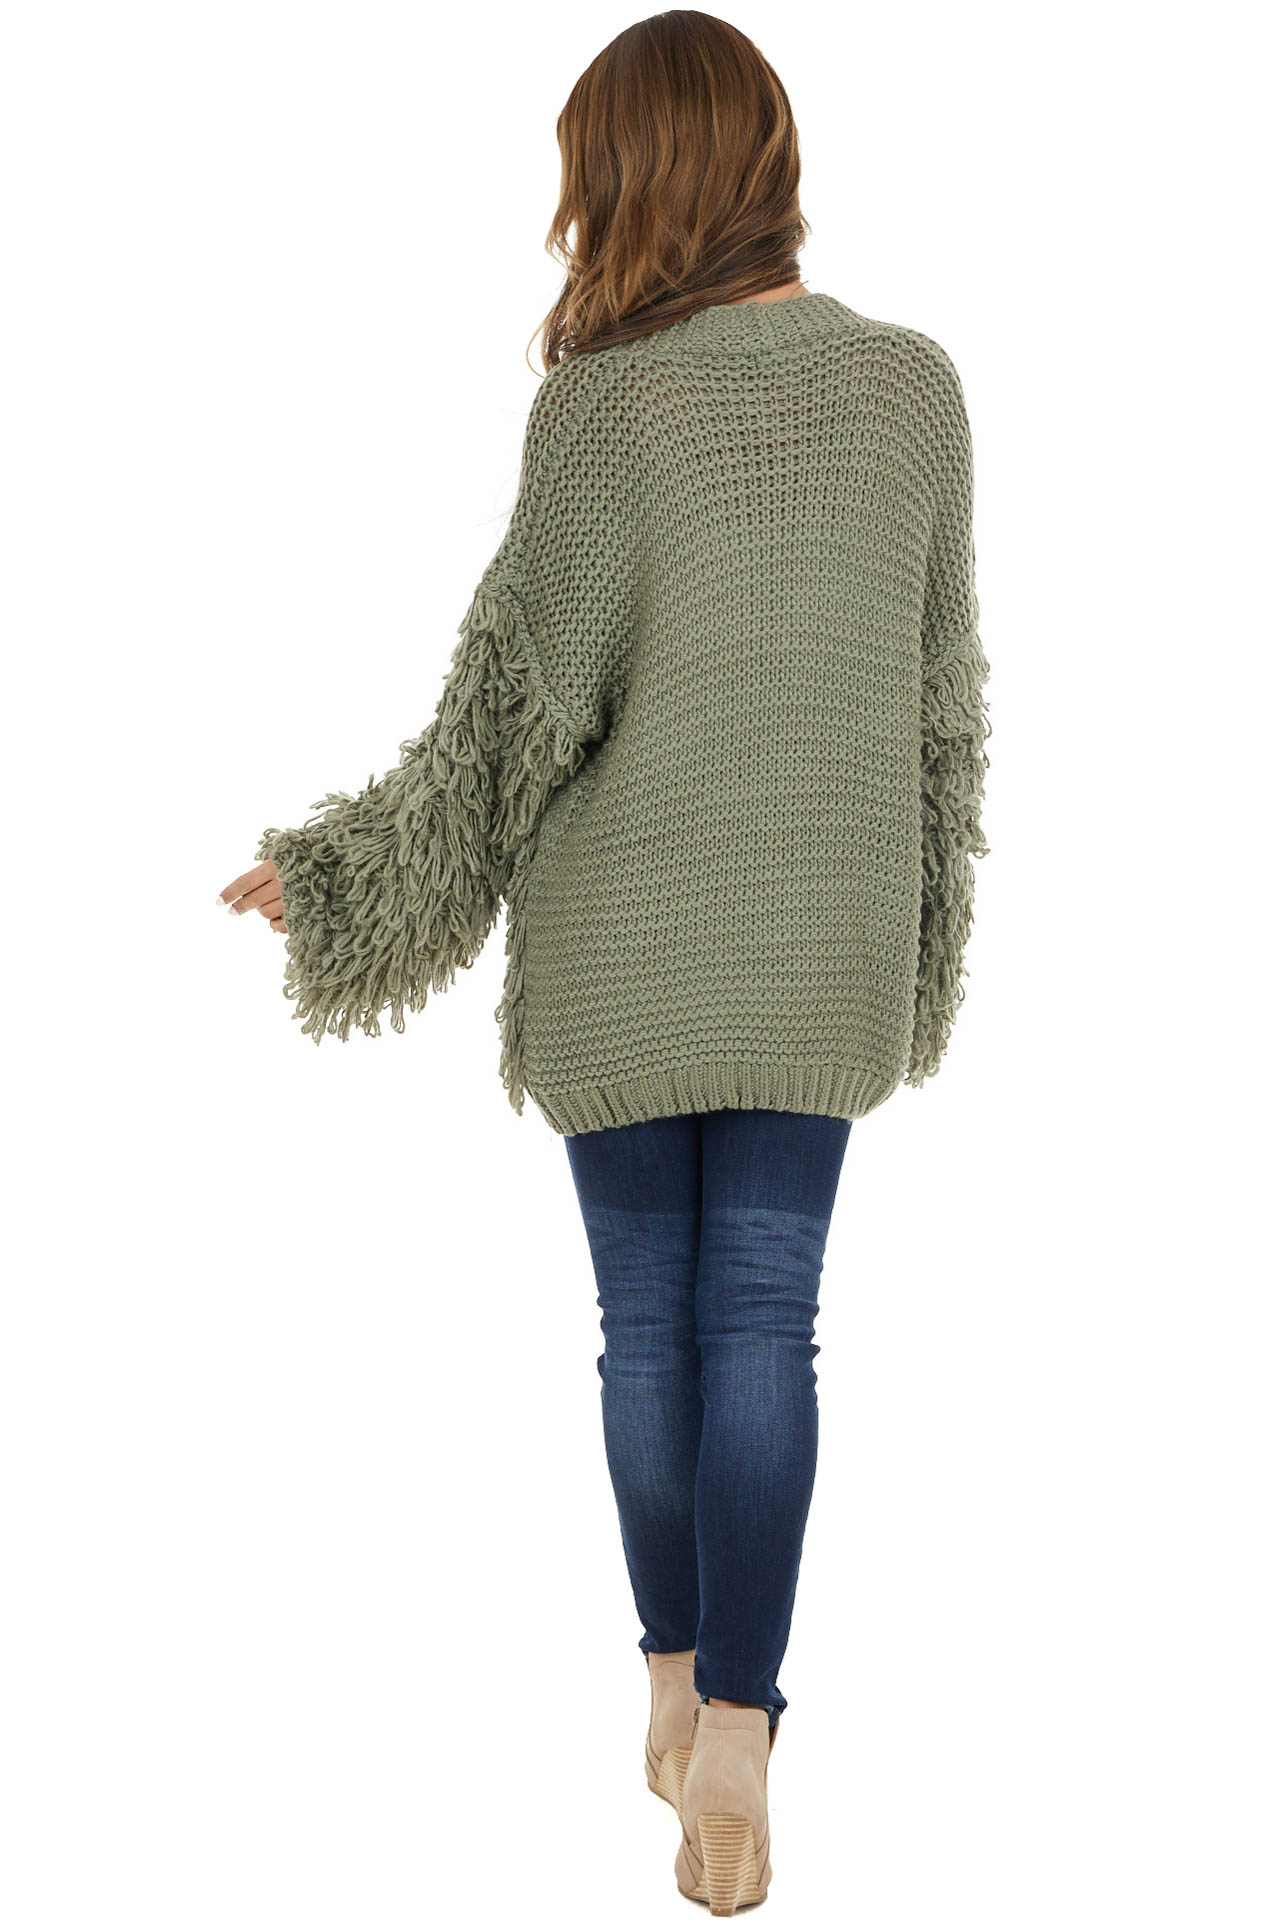 Olive Long Sleeve Knit Cardigan with Fringe Details